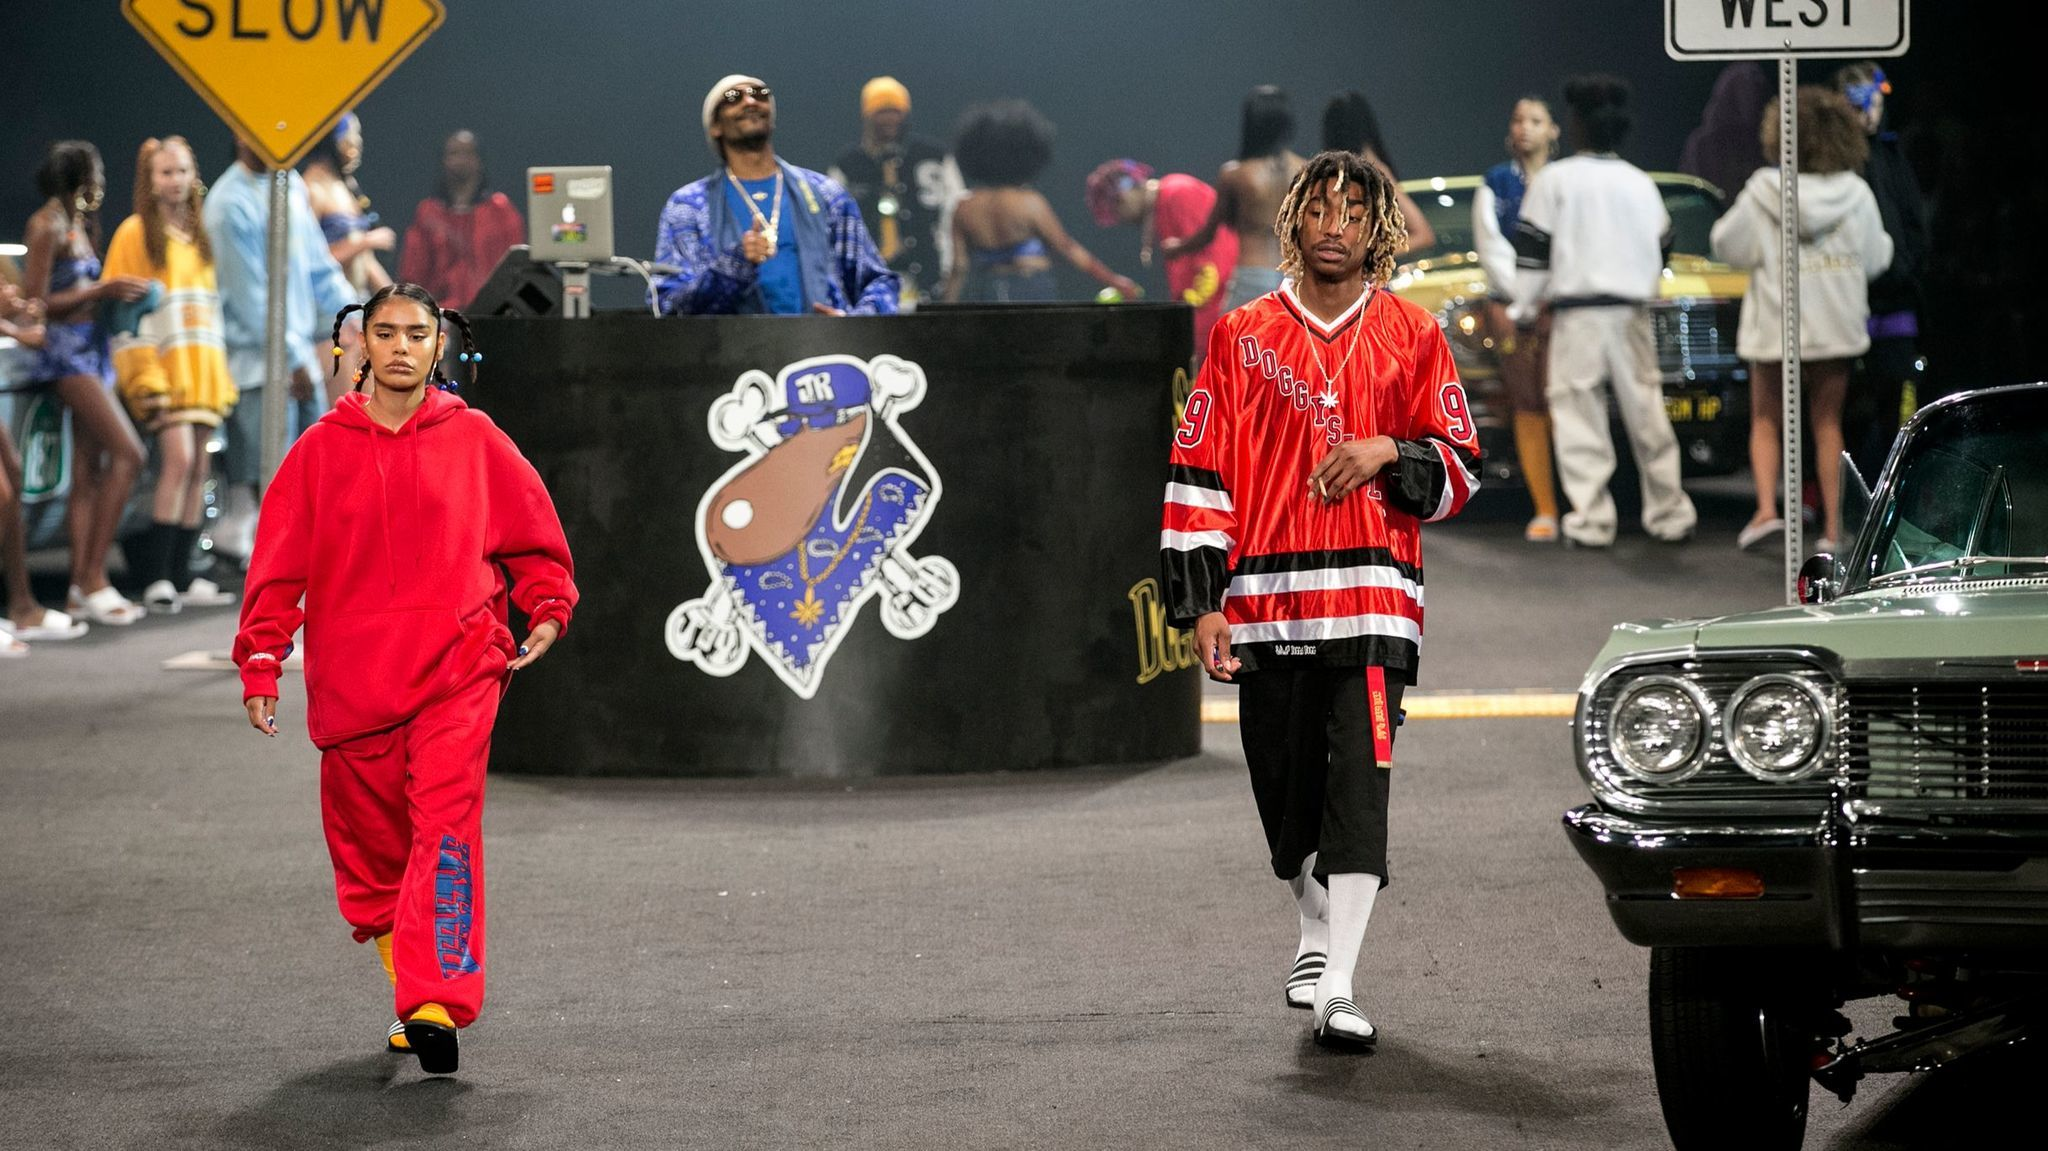 Snoop Dogg (center) performs during the Joyrich X Snoop Dogg fashion show on June 10, 2017, at L.A. Live's Event Deck in downtown Los Angeles.